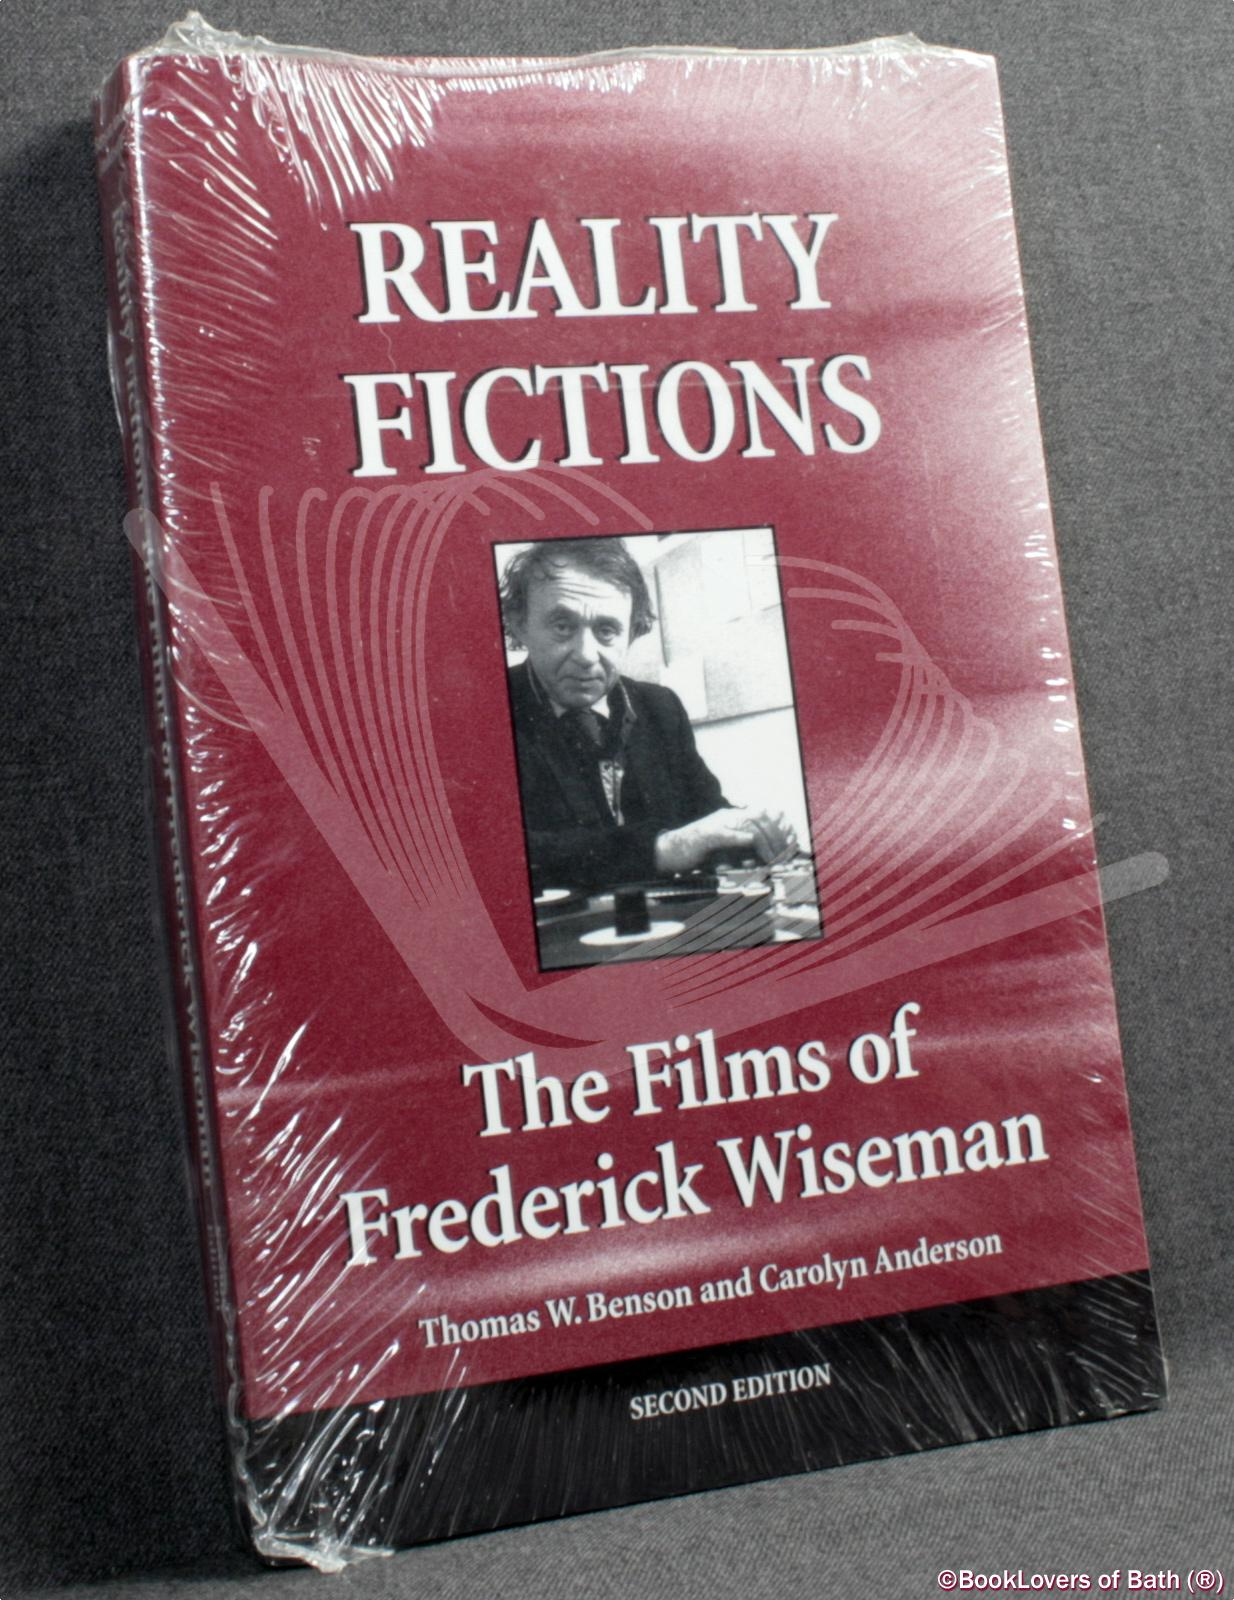 Reality Fictions: The Films of Frederick Wiseman - Thomas W. Benson & Carolyn Anderson